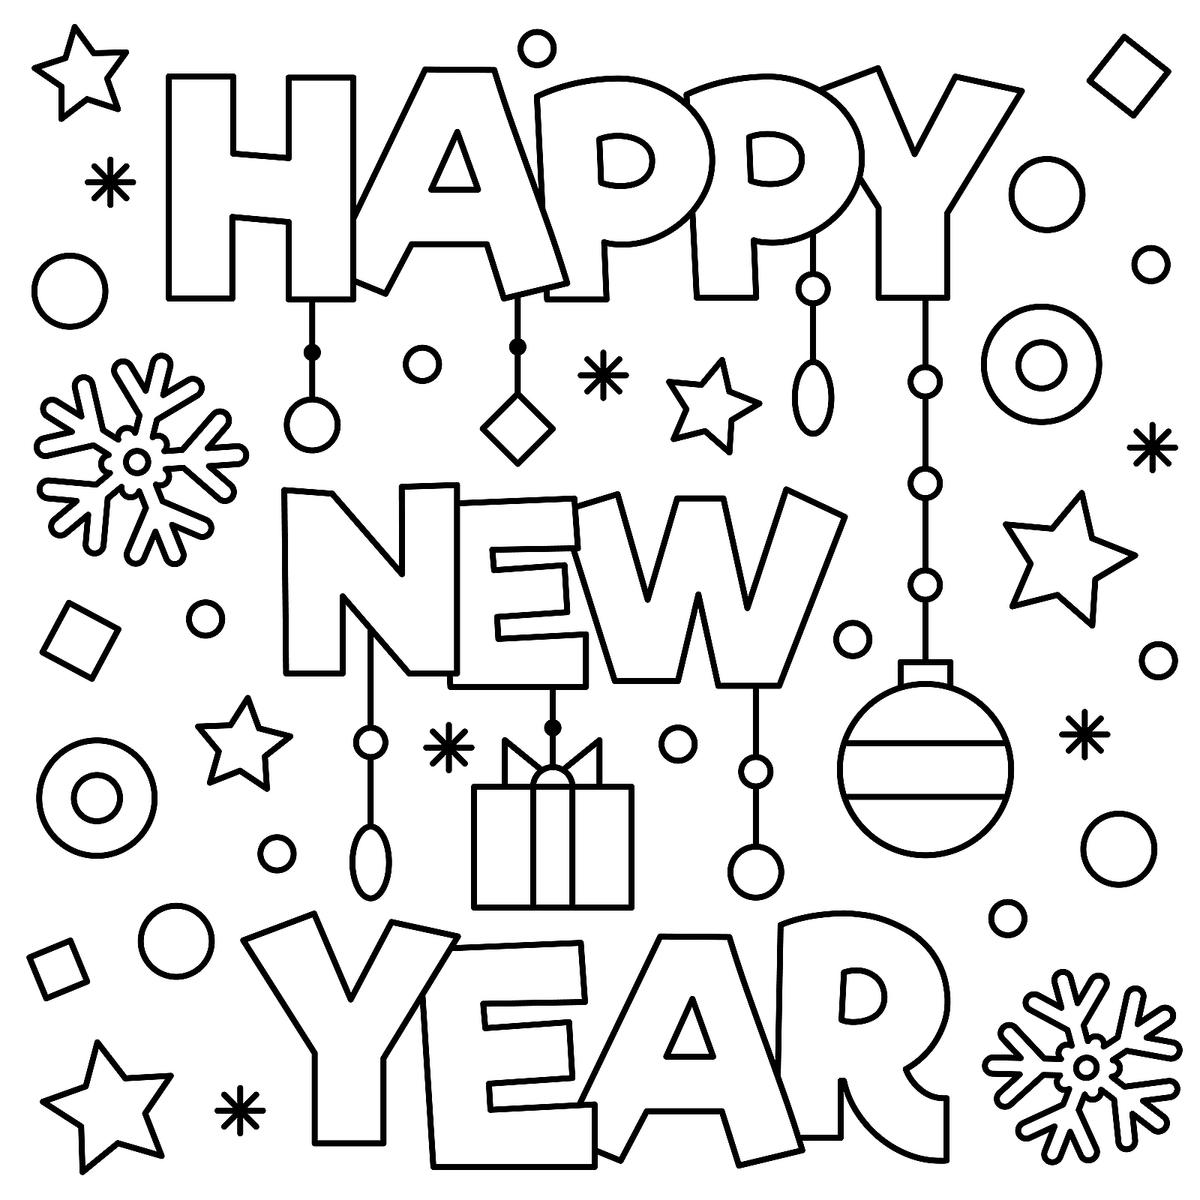 New Year January Coloring Pages Printable Fun to Help Kids